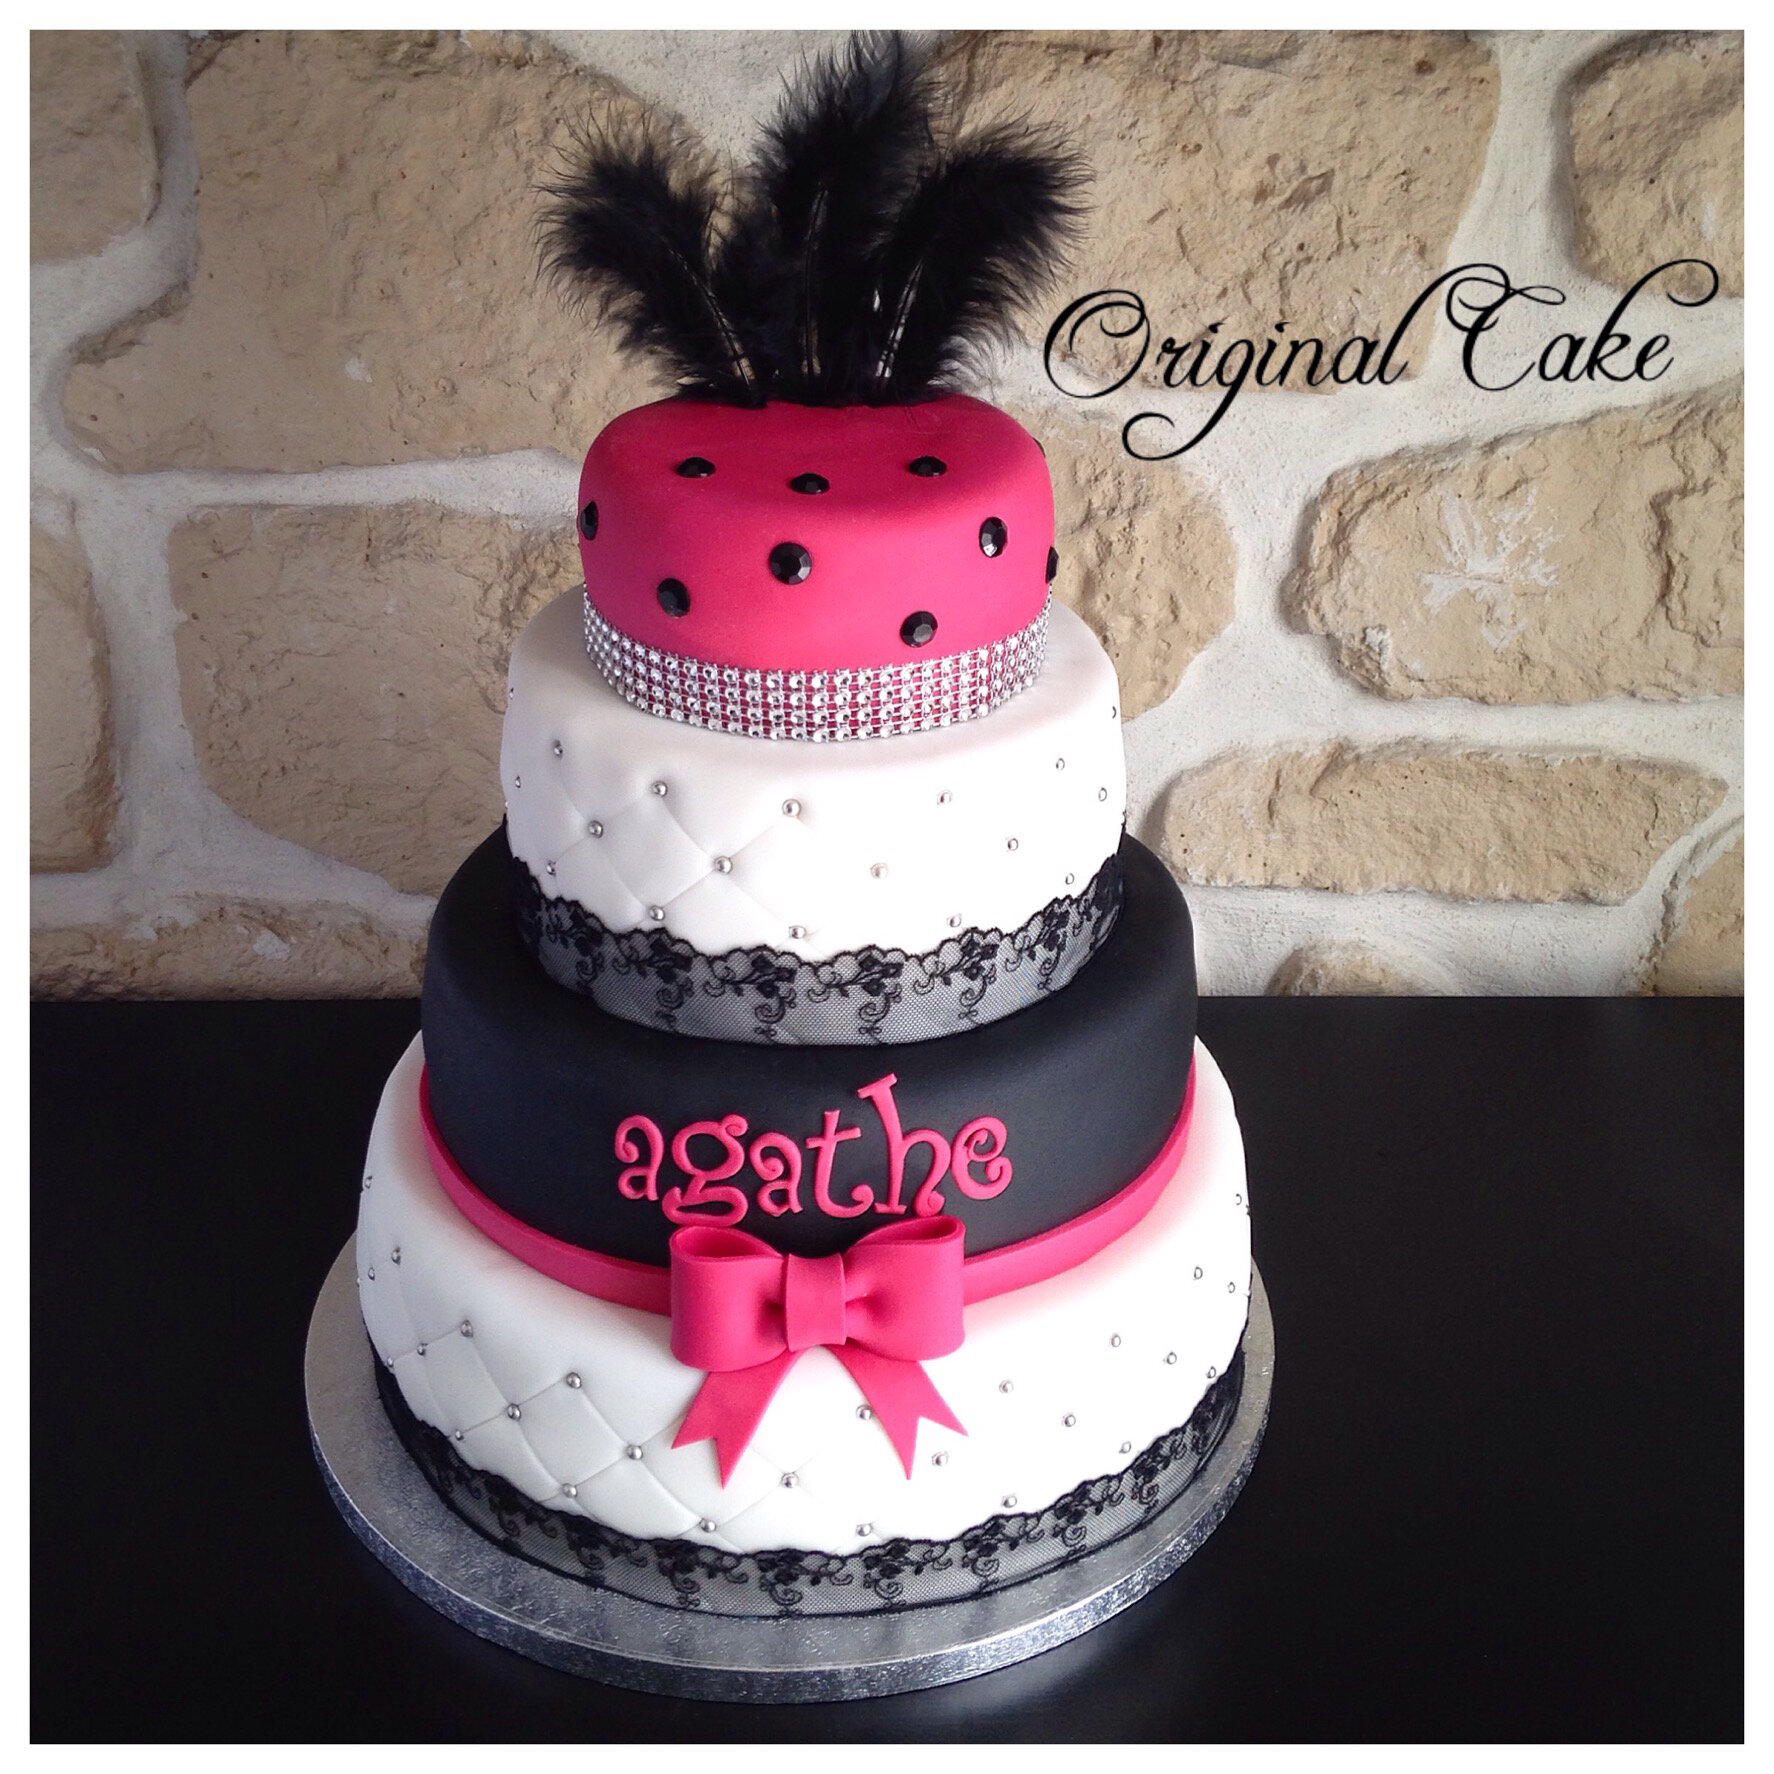 Decoration Gateau Originale Original Cake